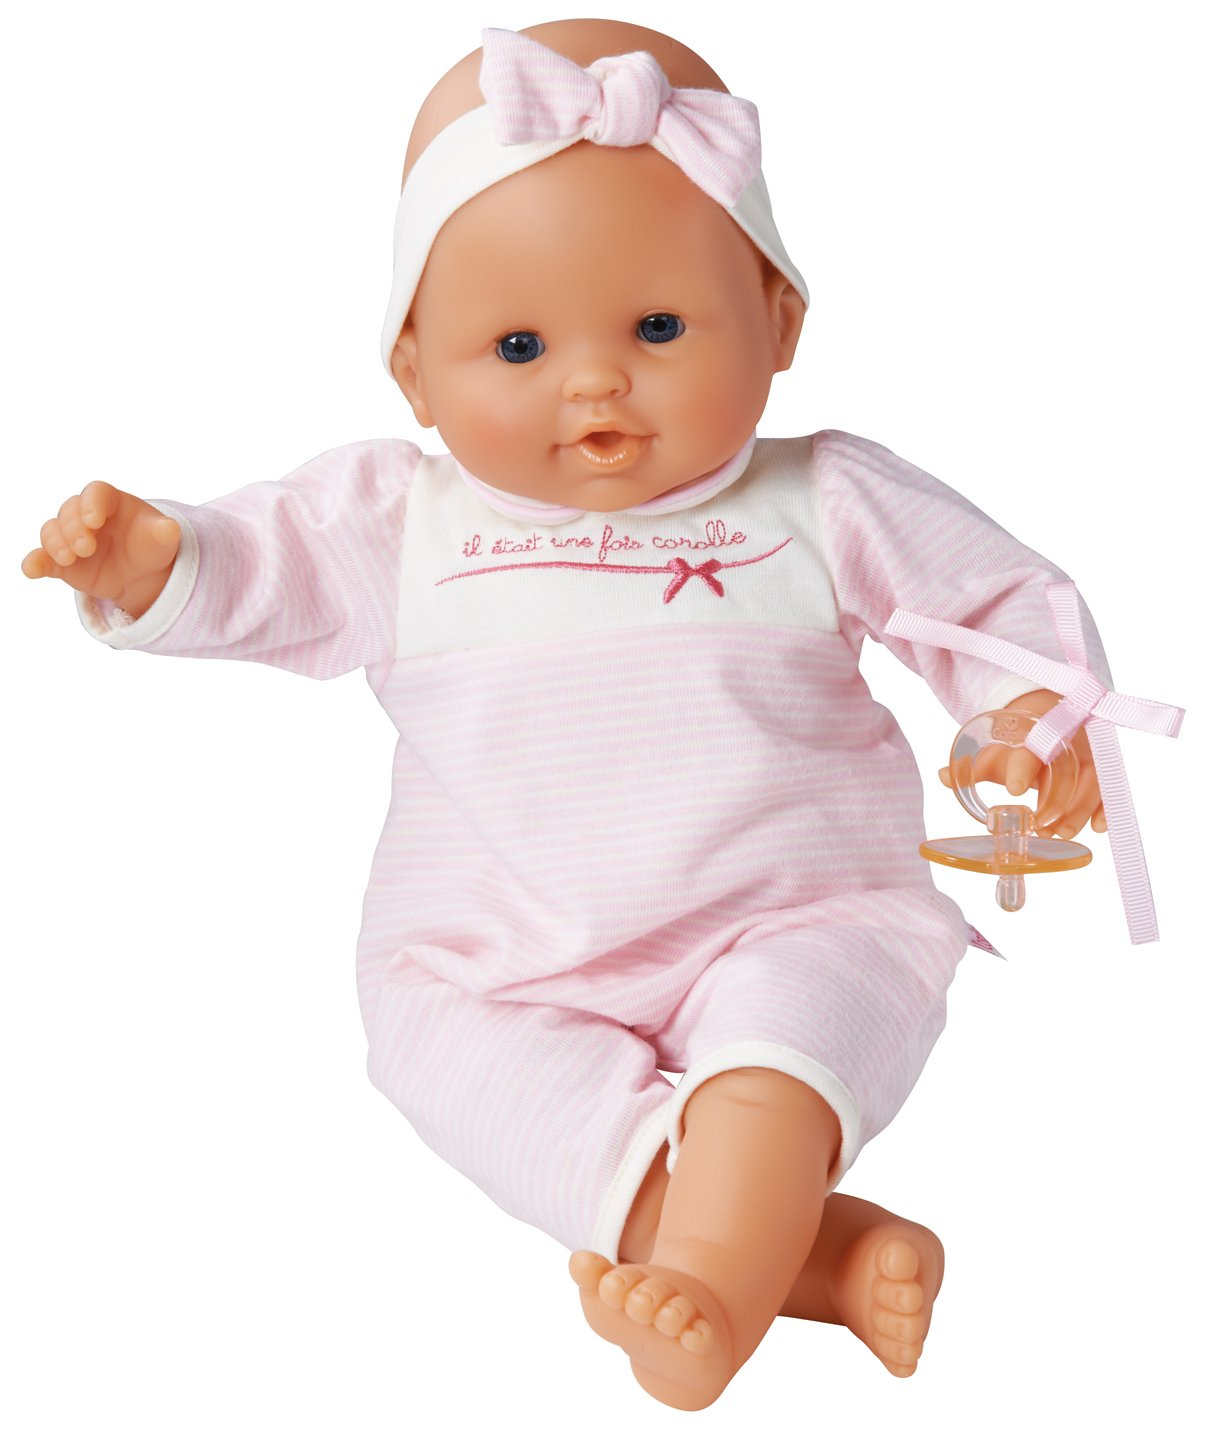 Corolle Les Classiques Suce Pouce Pink Stripes Baby Doll - Styles may vary by Corolle